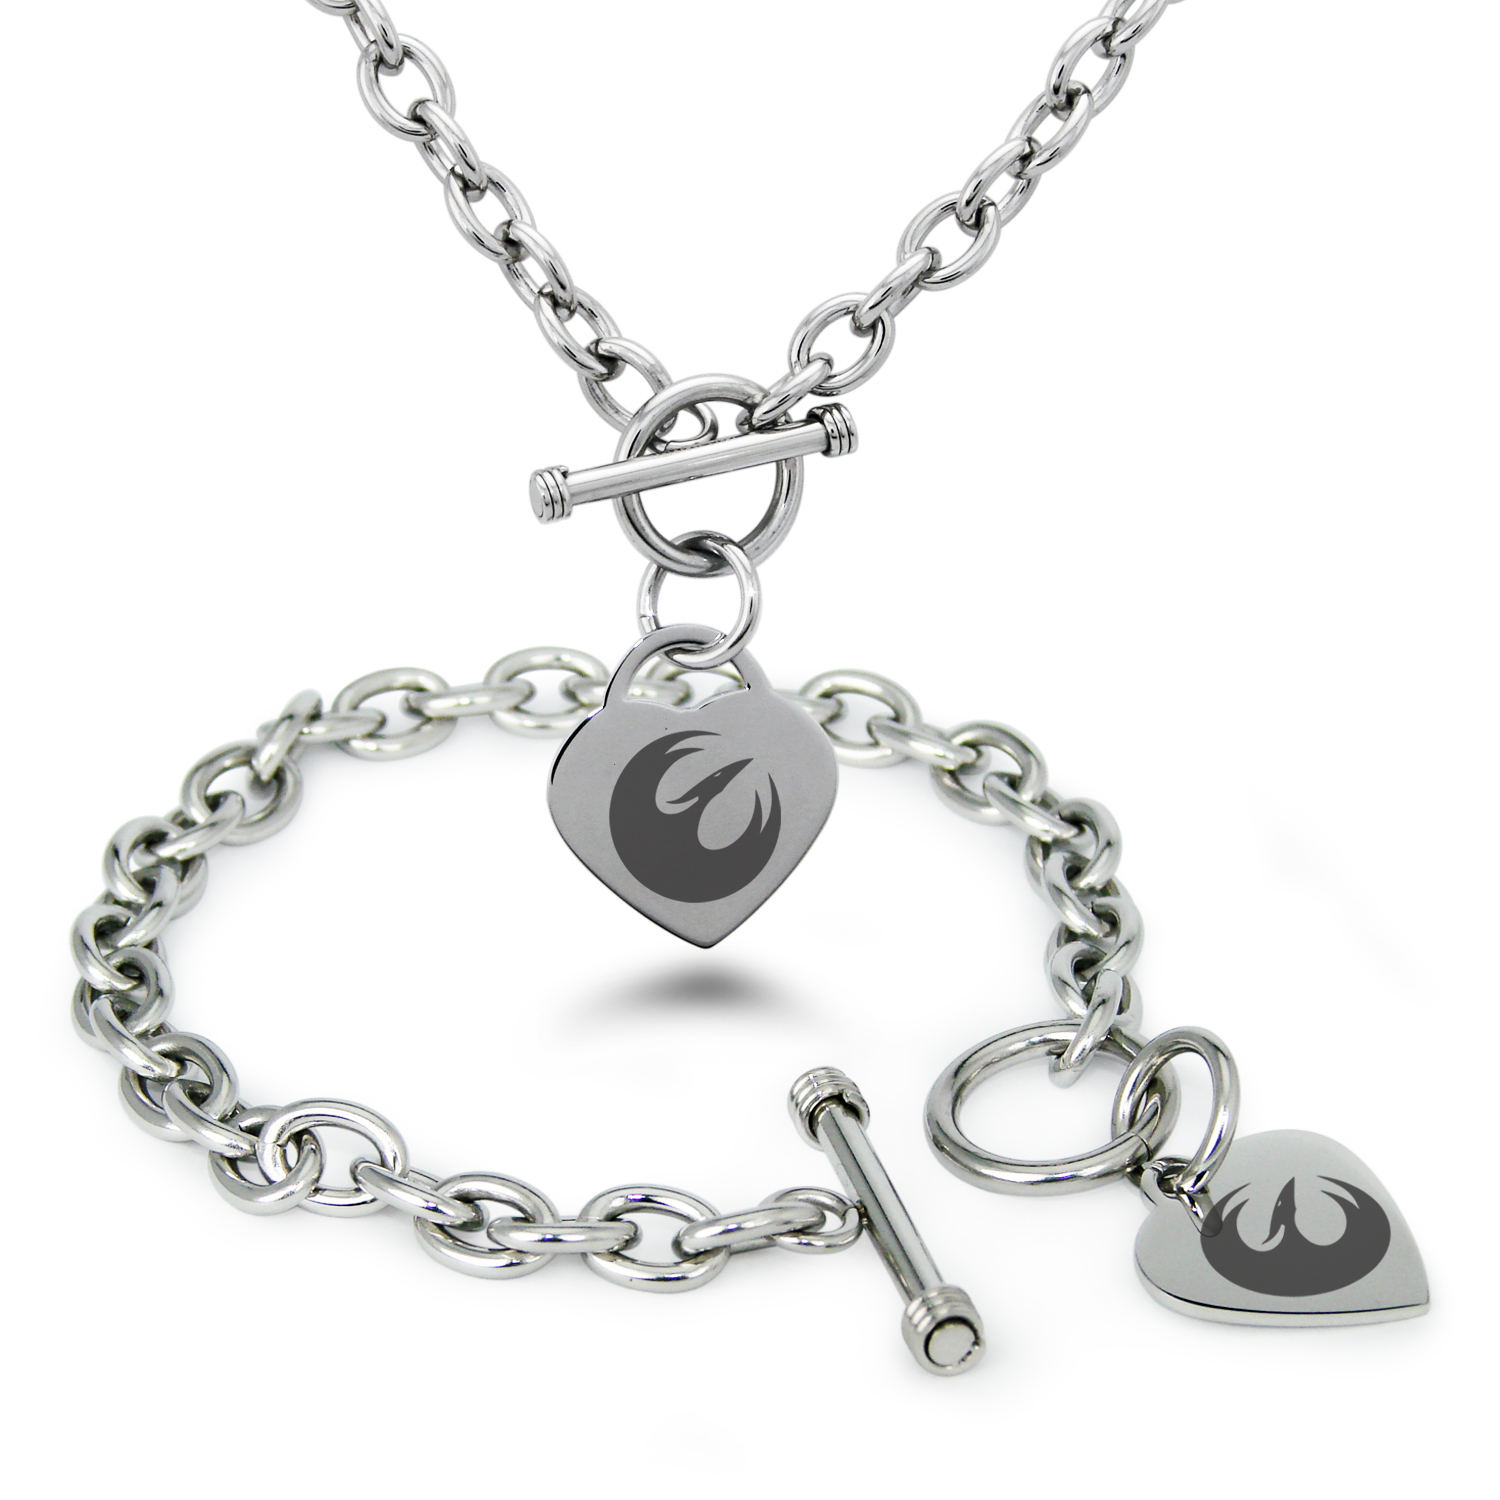 Stainless Steel Star Wars Rebel Phoenix Symbol Heart Charm Toggle Bracelet & Necklace